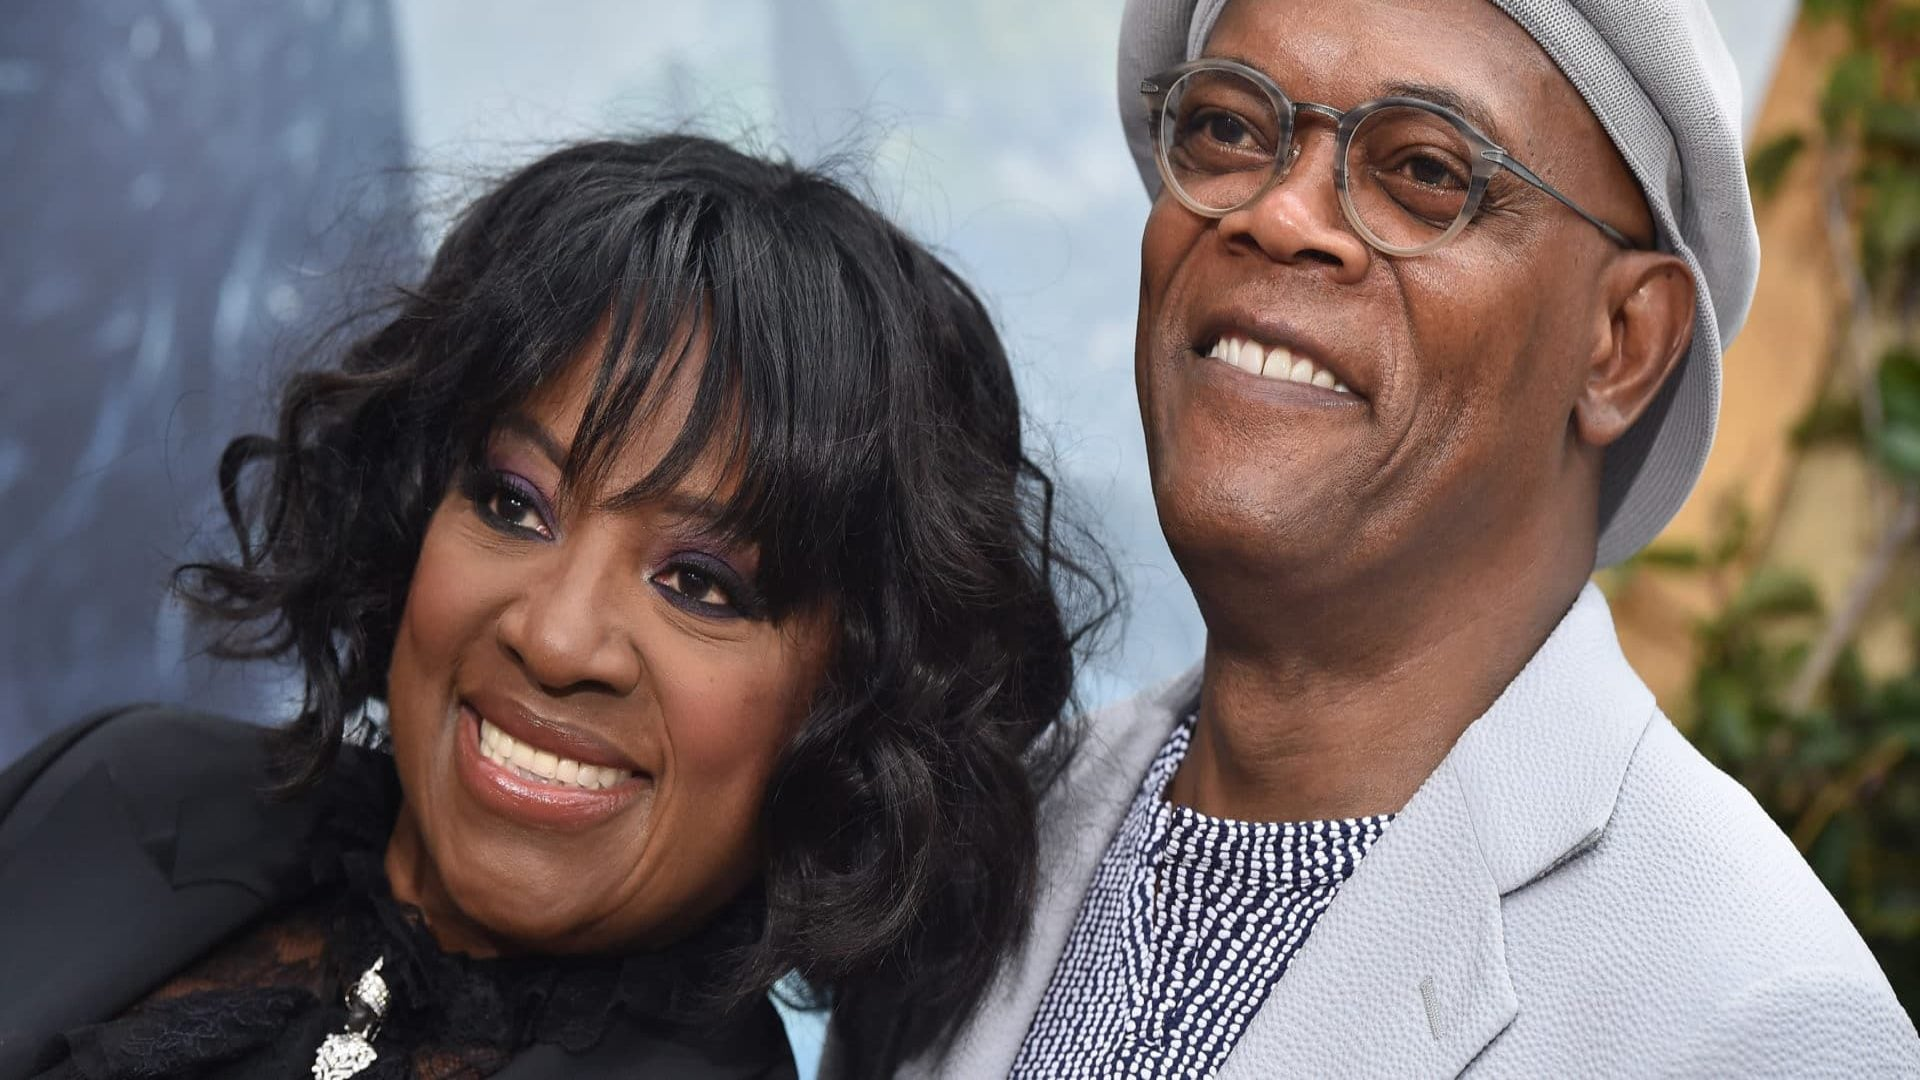 Samuel L. Jackson's Wife LaTanya Richardson Jackson Reveals What's Kept Their Marriage Together For 38 Years